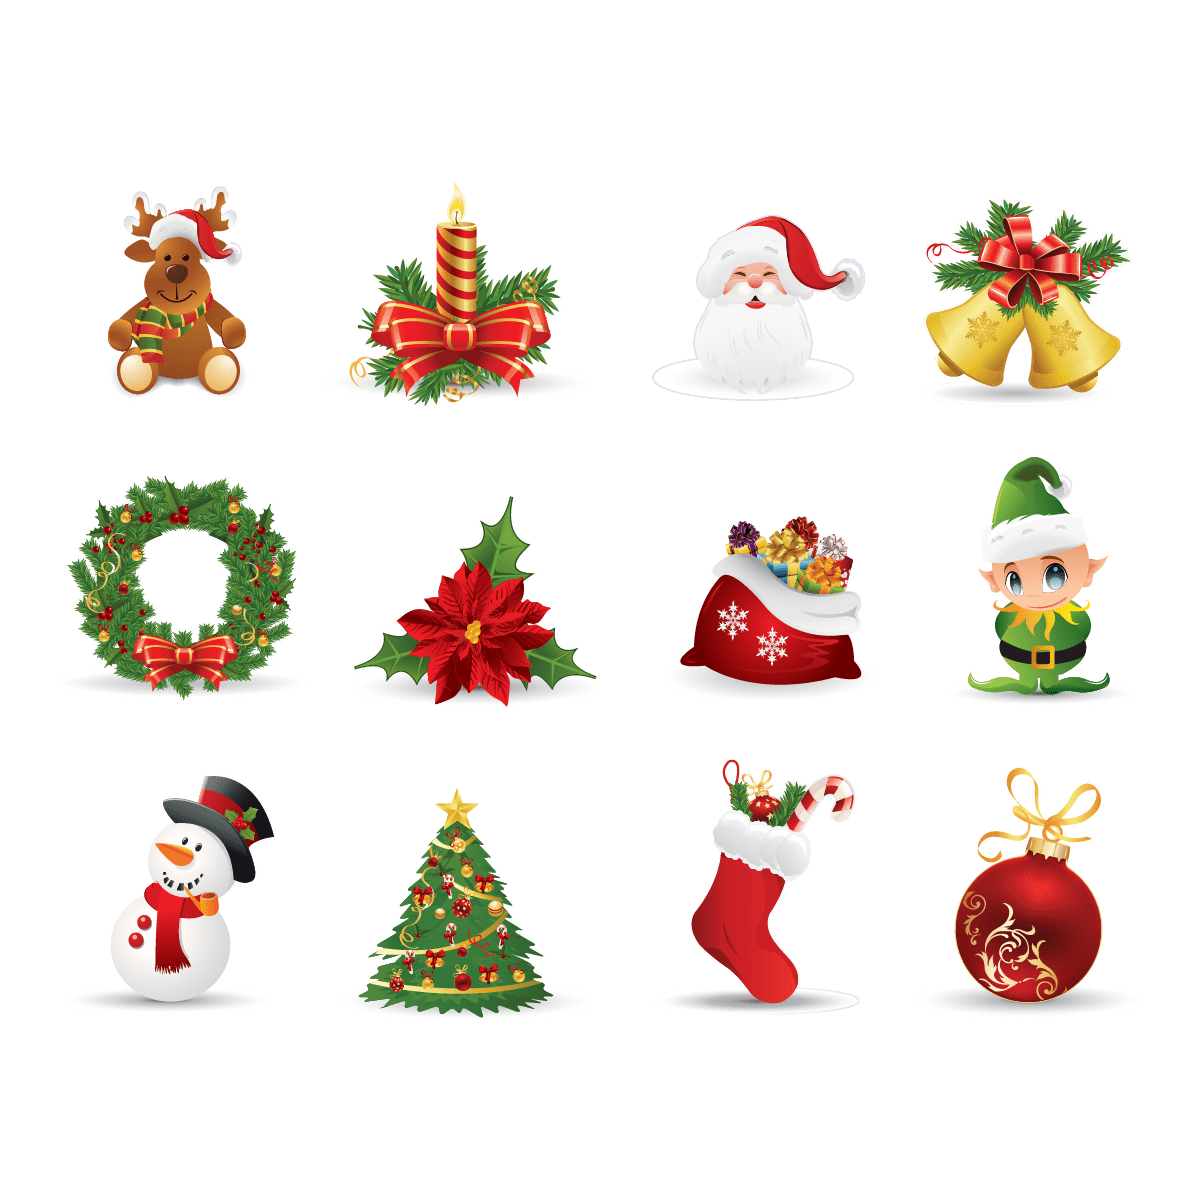 Image Decoration Noel Sticker Noël Décorations De Noël – Stickers Stickers FÊtes